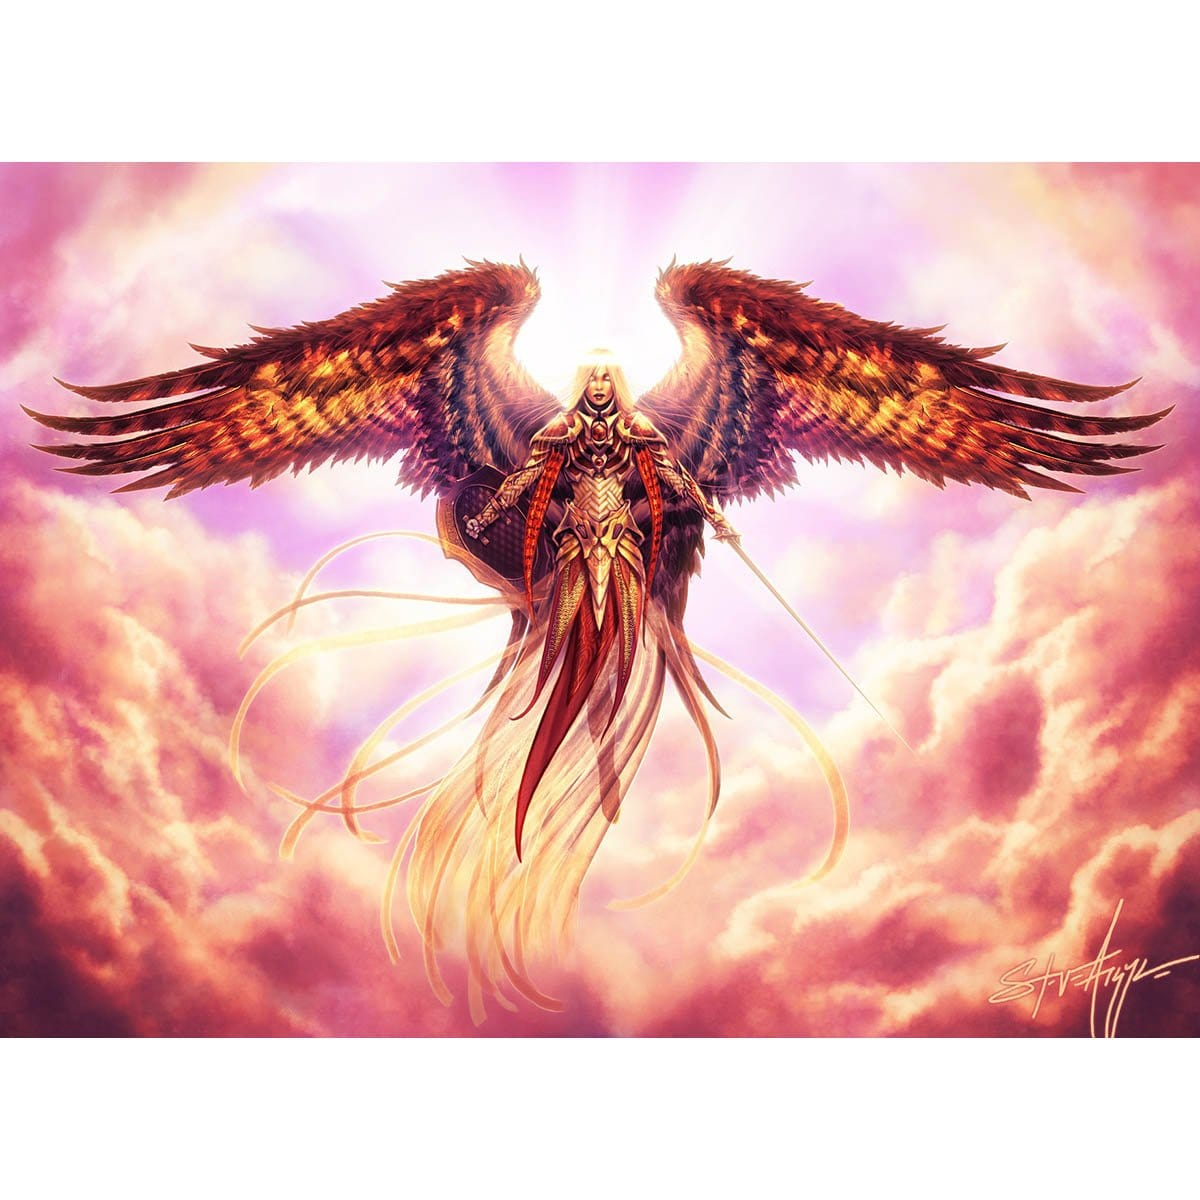 Angelic Arbiter Print - Print - Original Magic Art - Accessories for Magic the Gathering and other card games